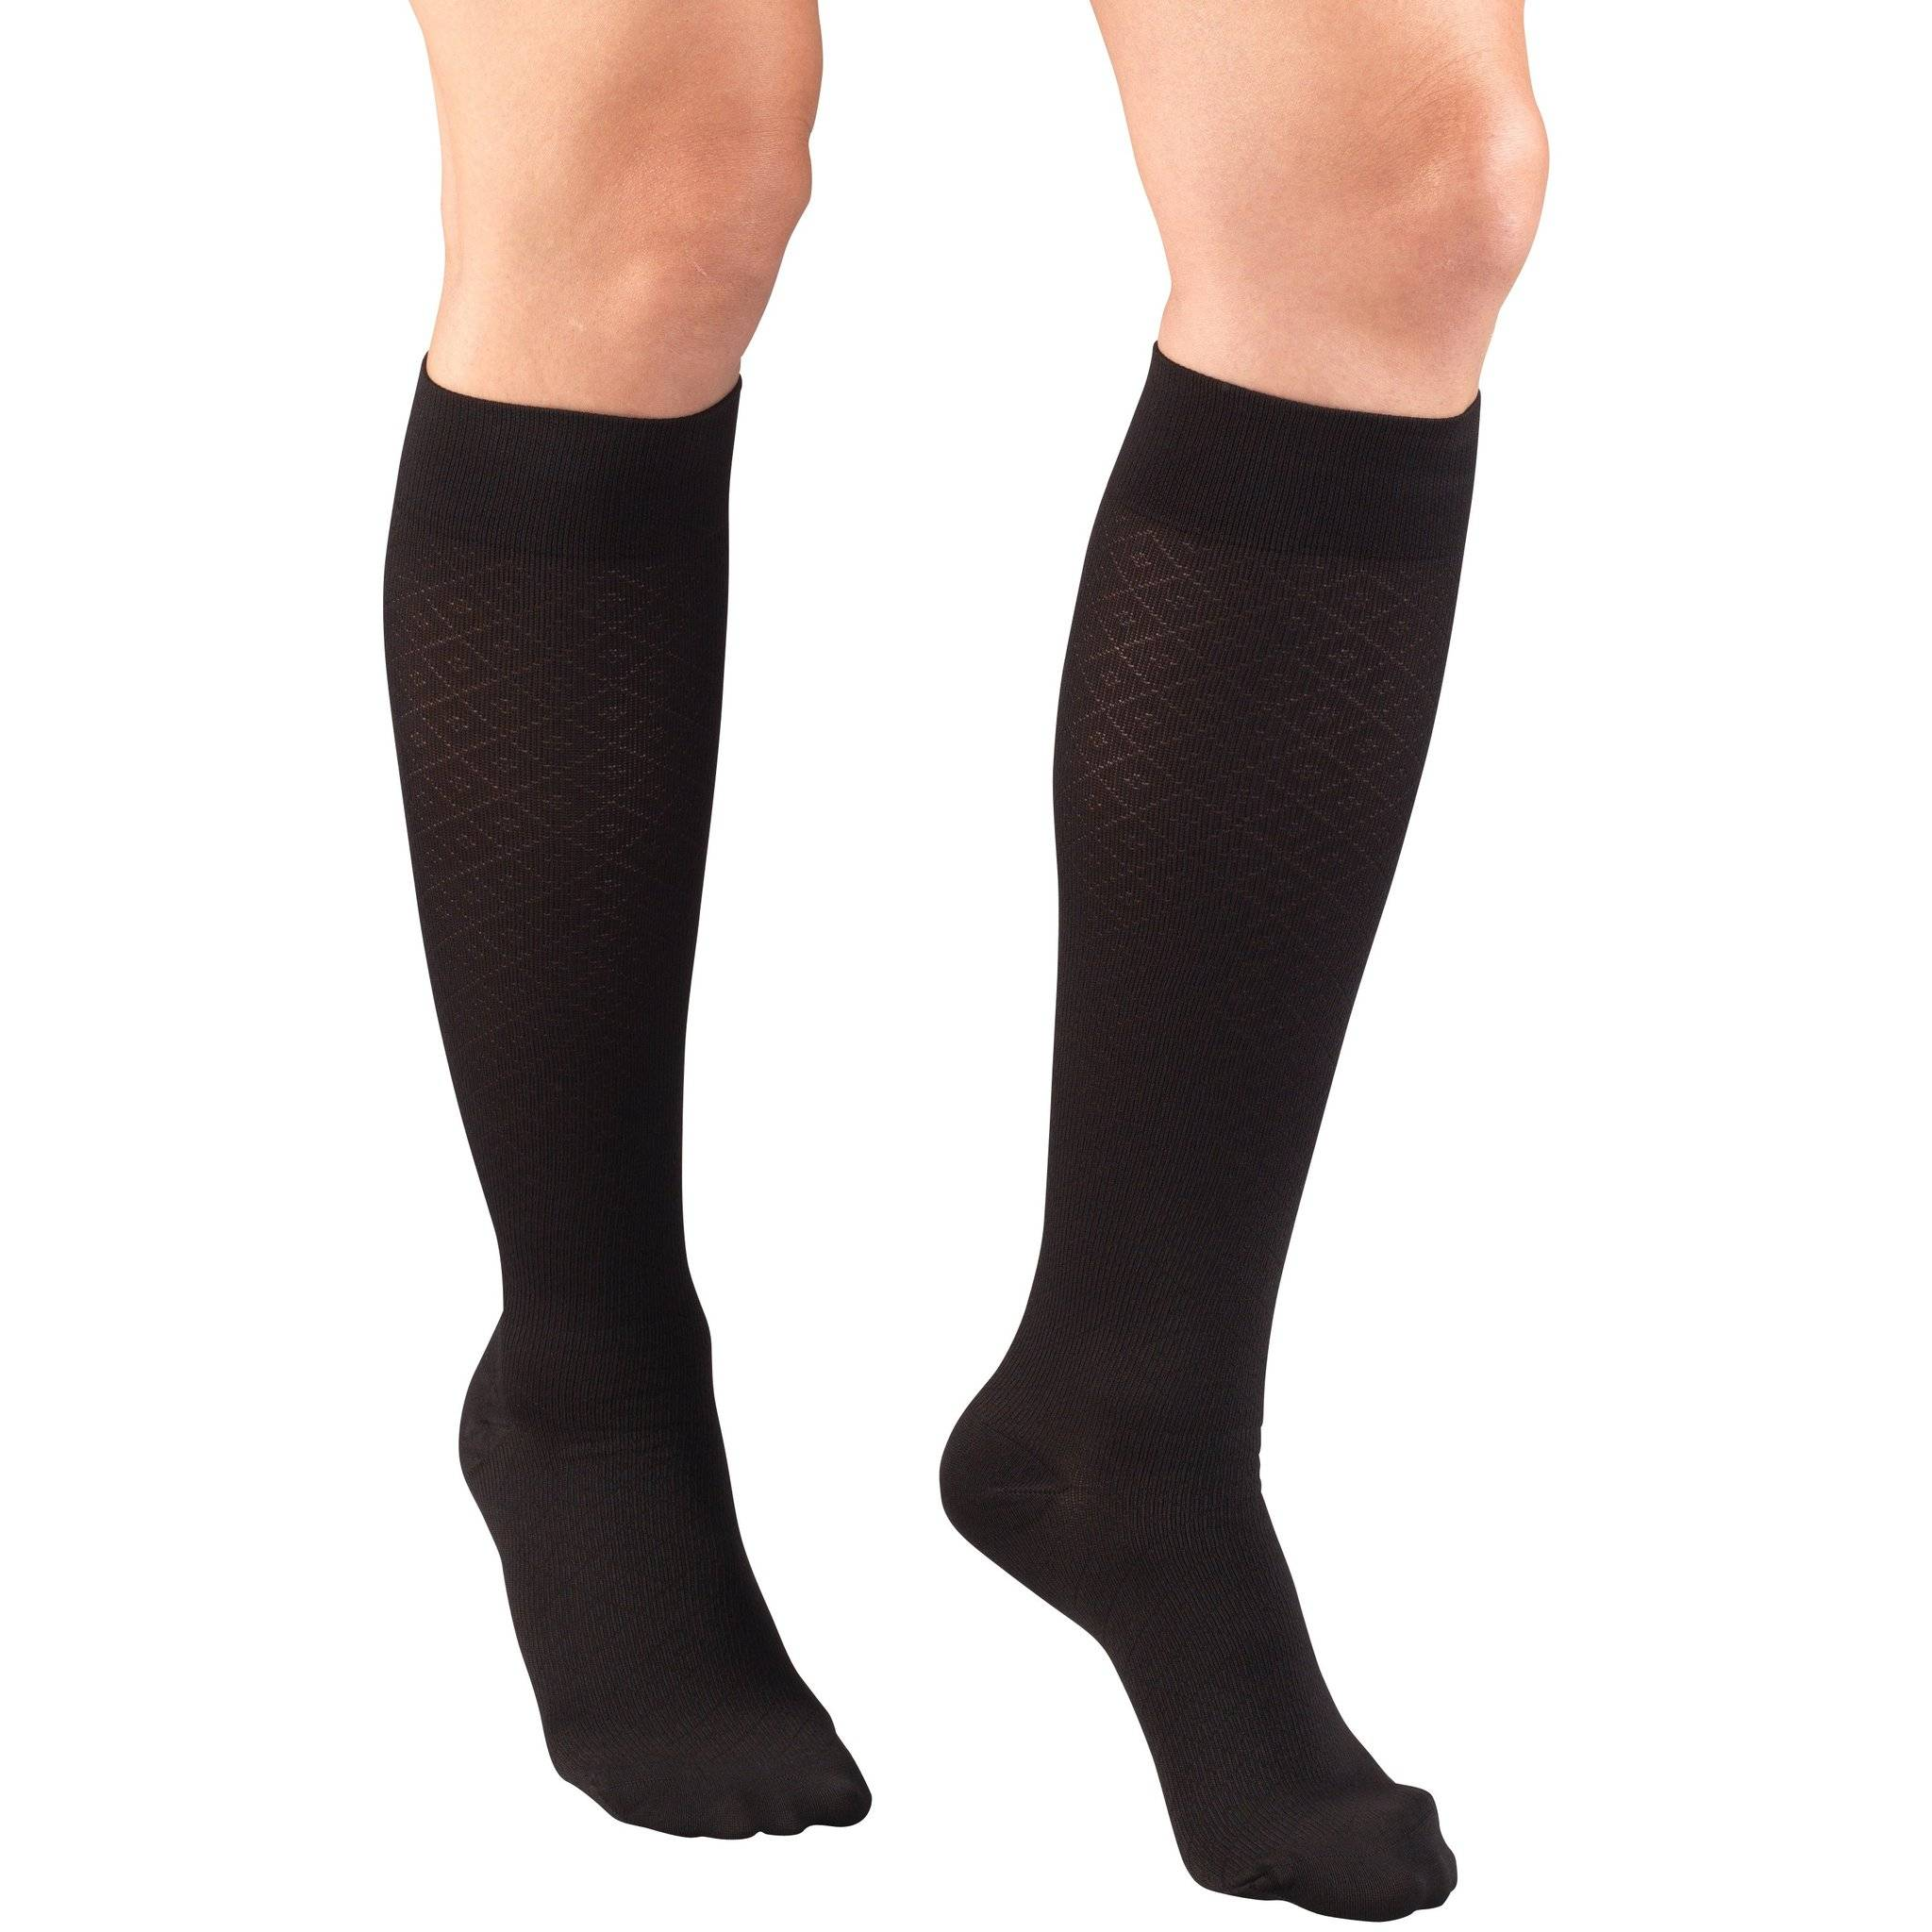 Ladies' Knee High Diamond Pattern Socks